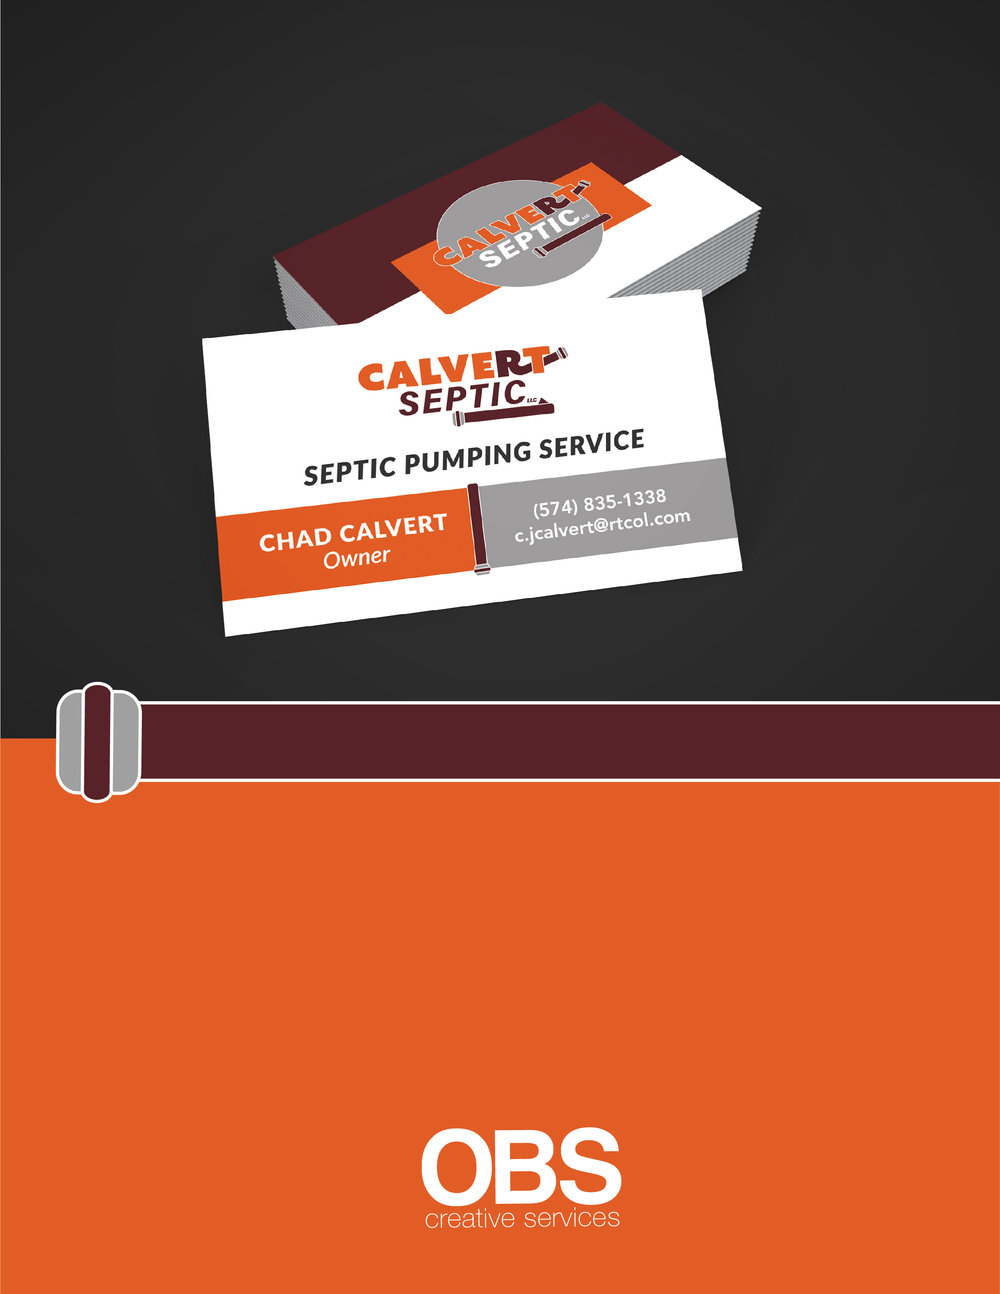 Calvert Septic Business Cards@300x-100.jpg